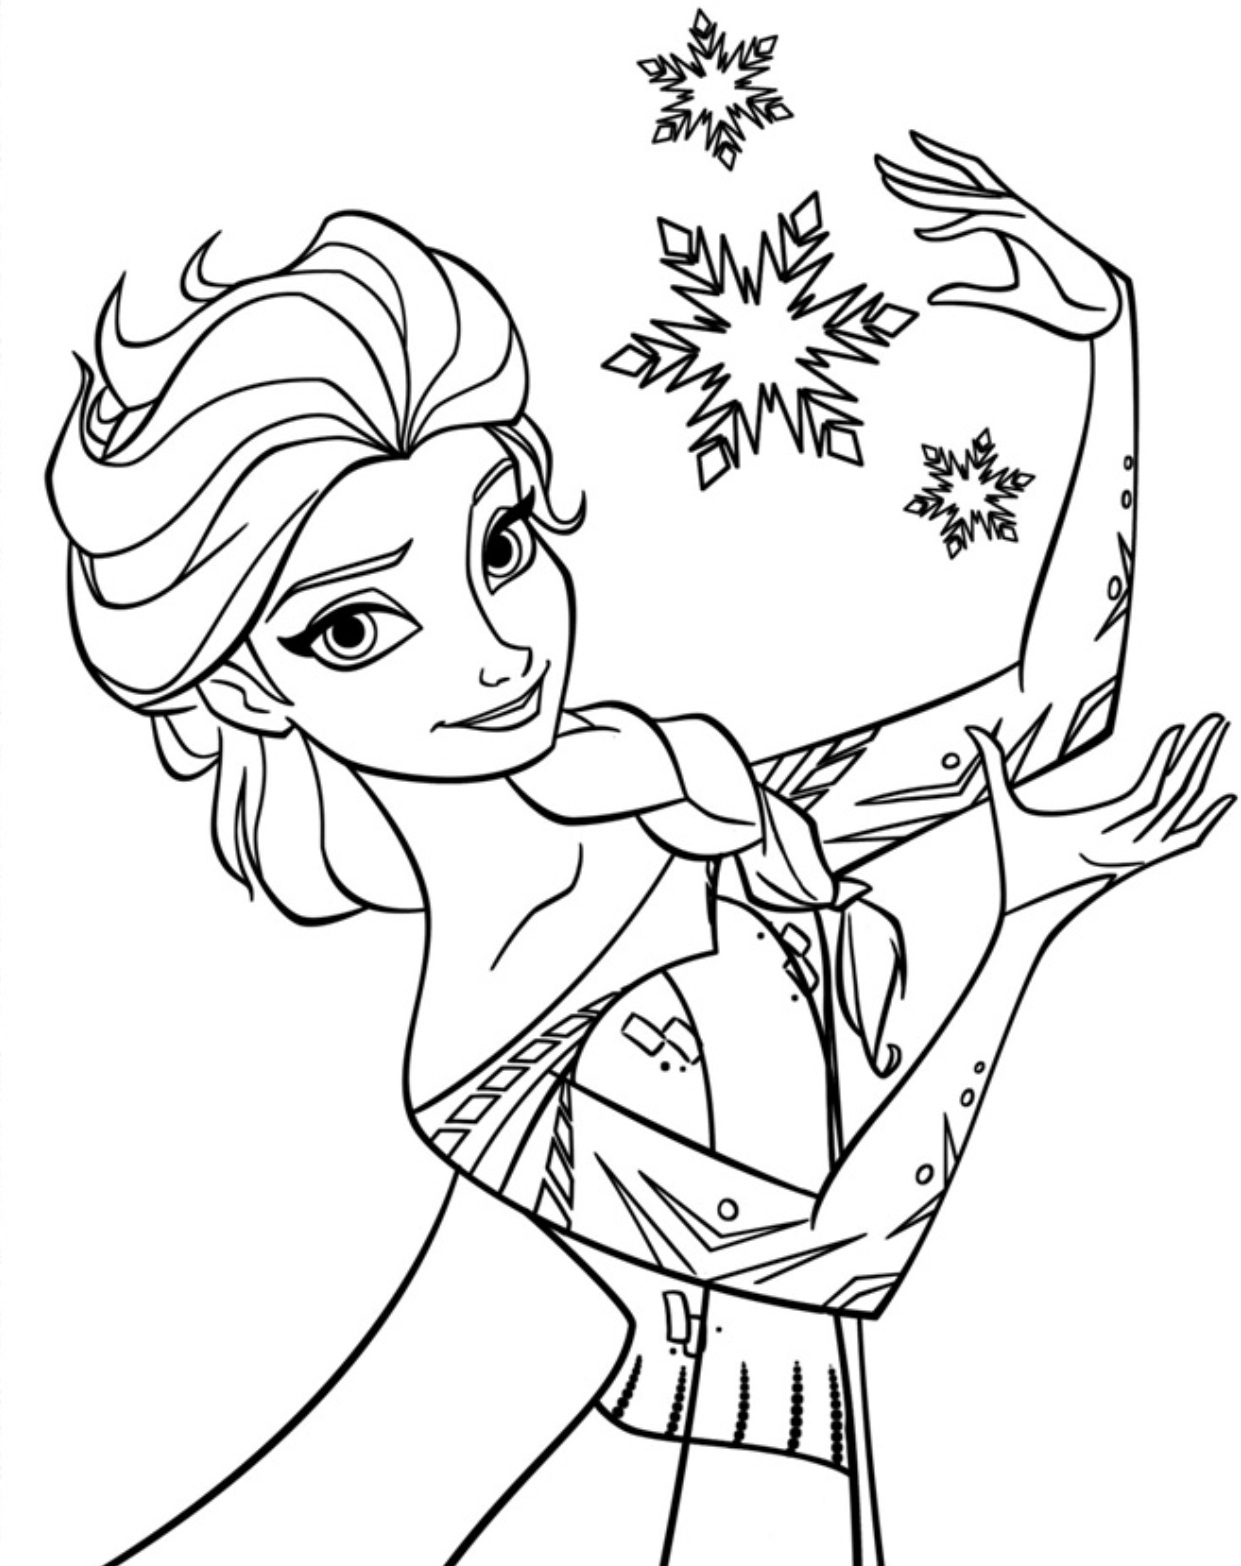 for coloring 30 best coloring pages for kids we need fun for coloring